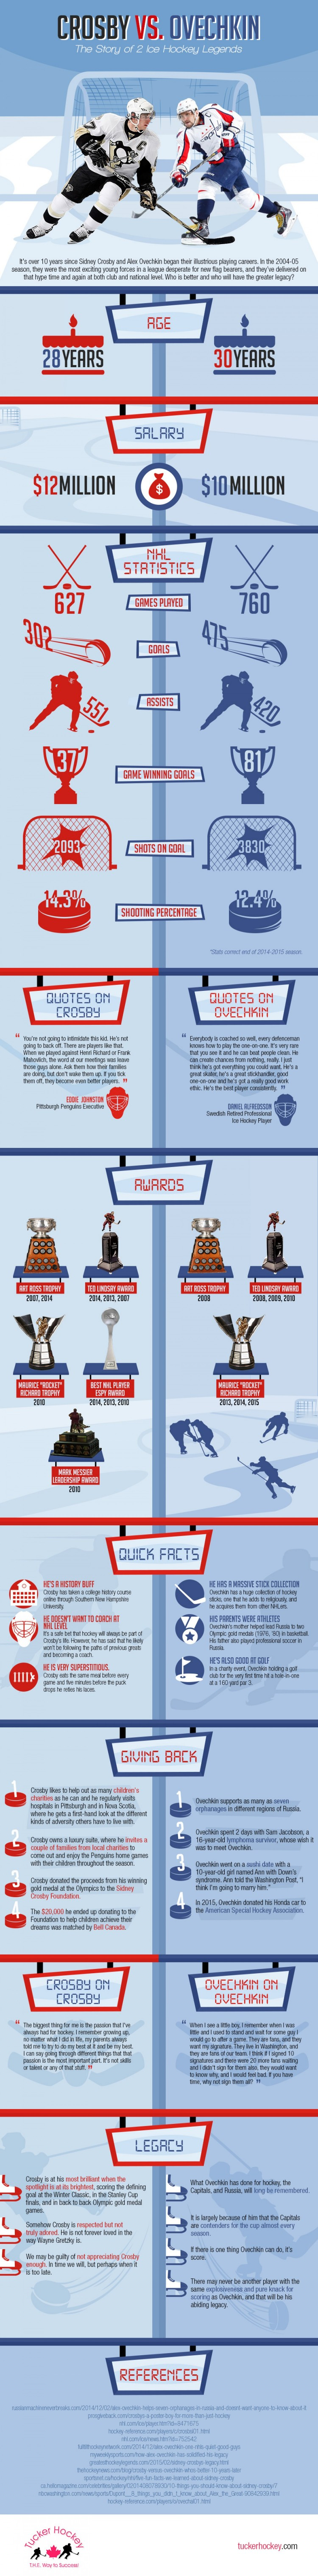 crosby-vs-ovechkin-the-story-of-2-ice-hockey-legends_Infographics